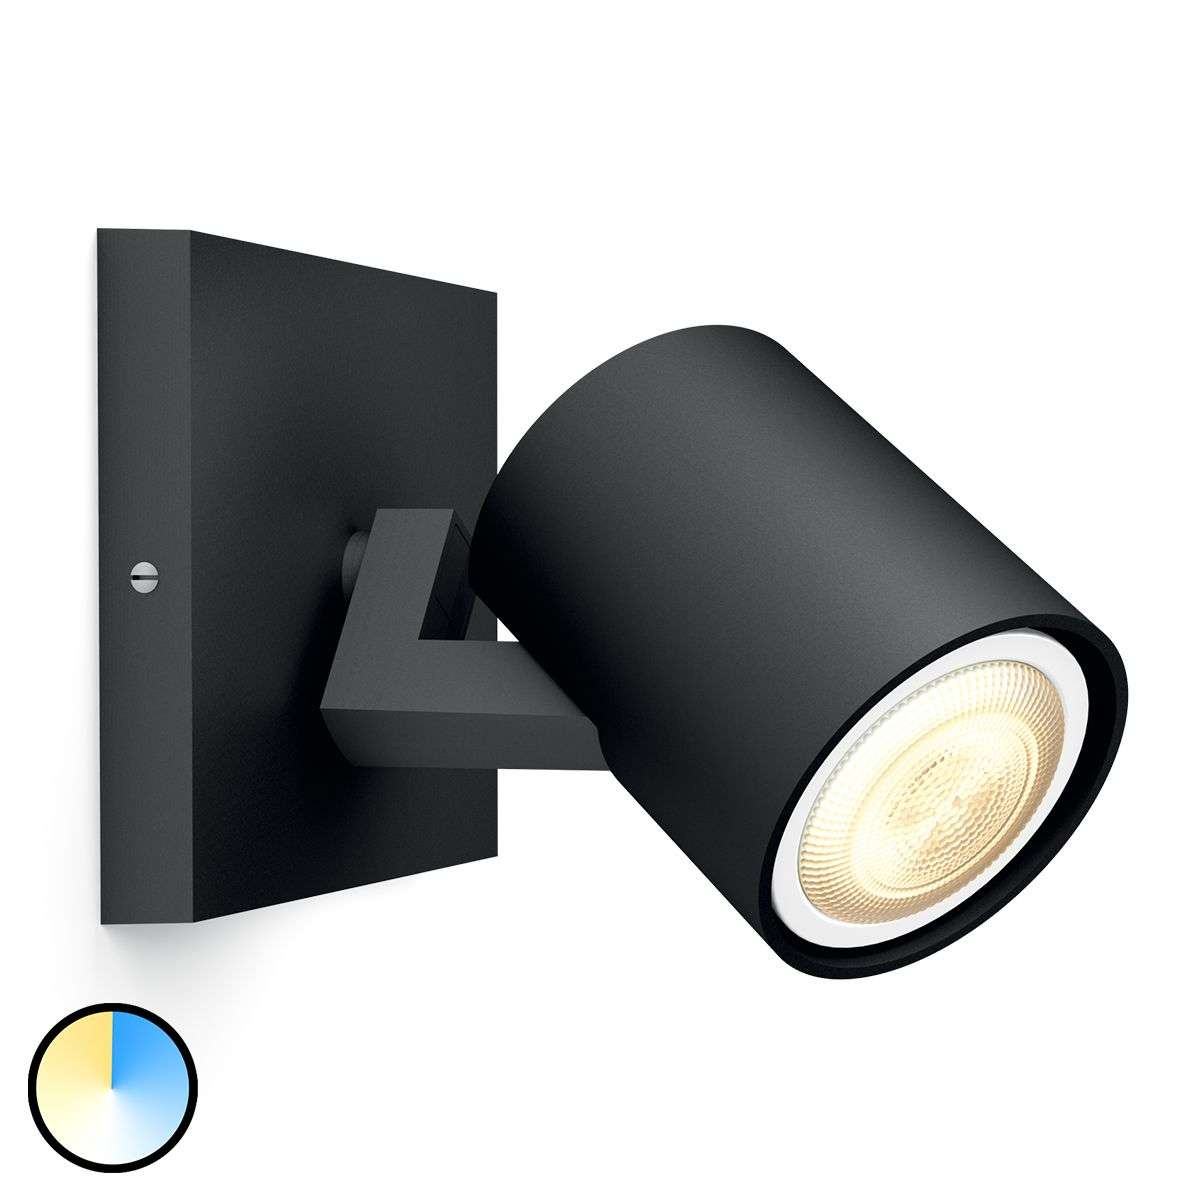 avec variateur spot led philips hue runner. Black Bedroom Furniture Sets. Home Design Ideas